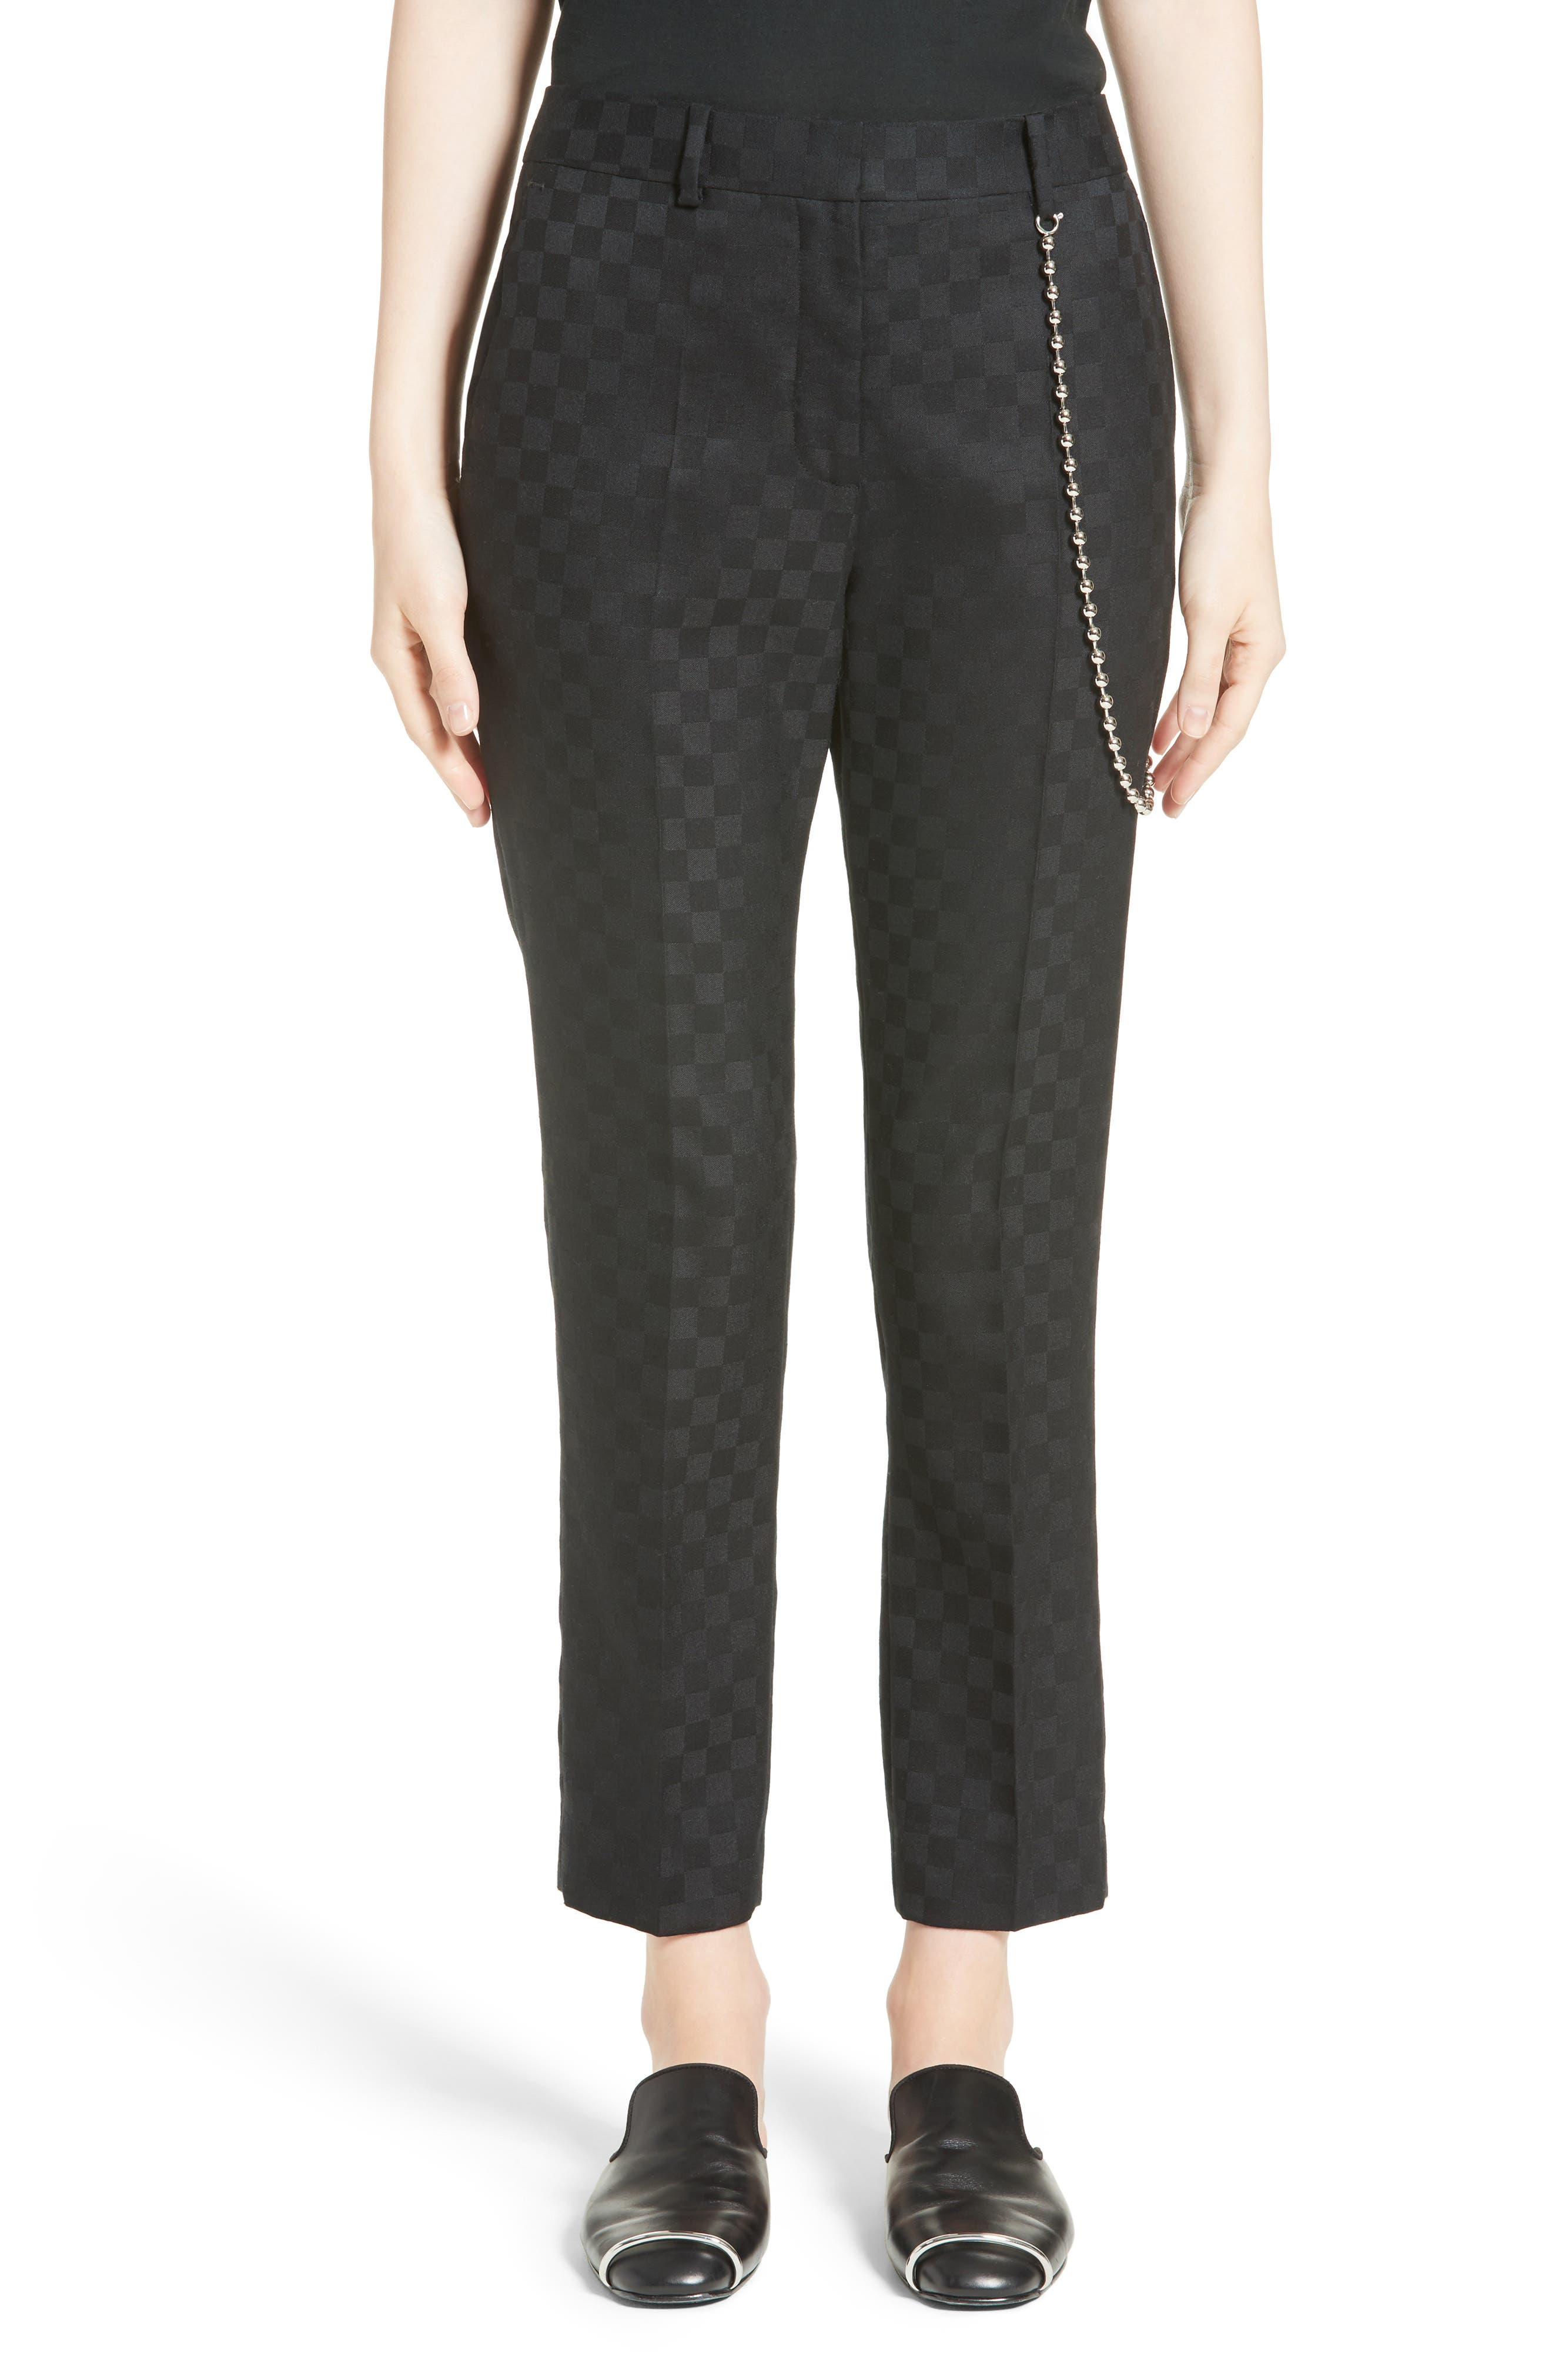 Alternate Image 1 Selected - Alexander Wang Chain Trim Checkerboard Pants